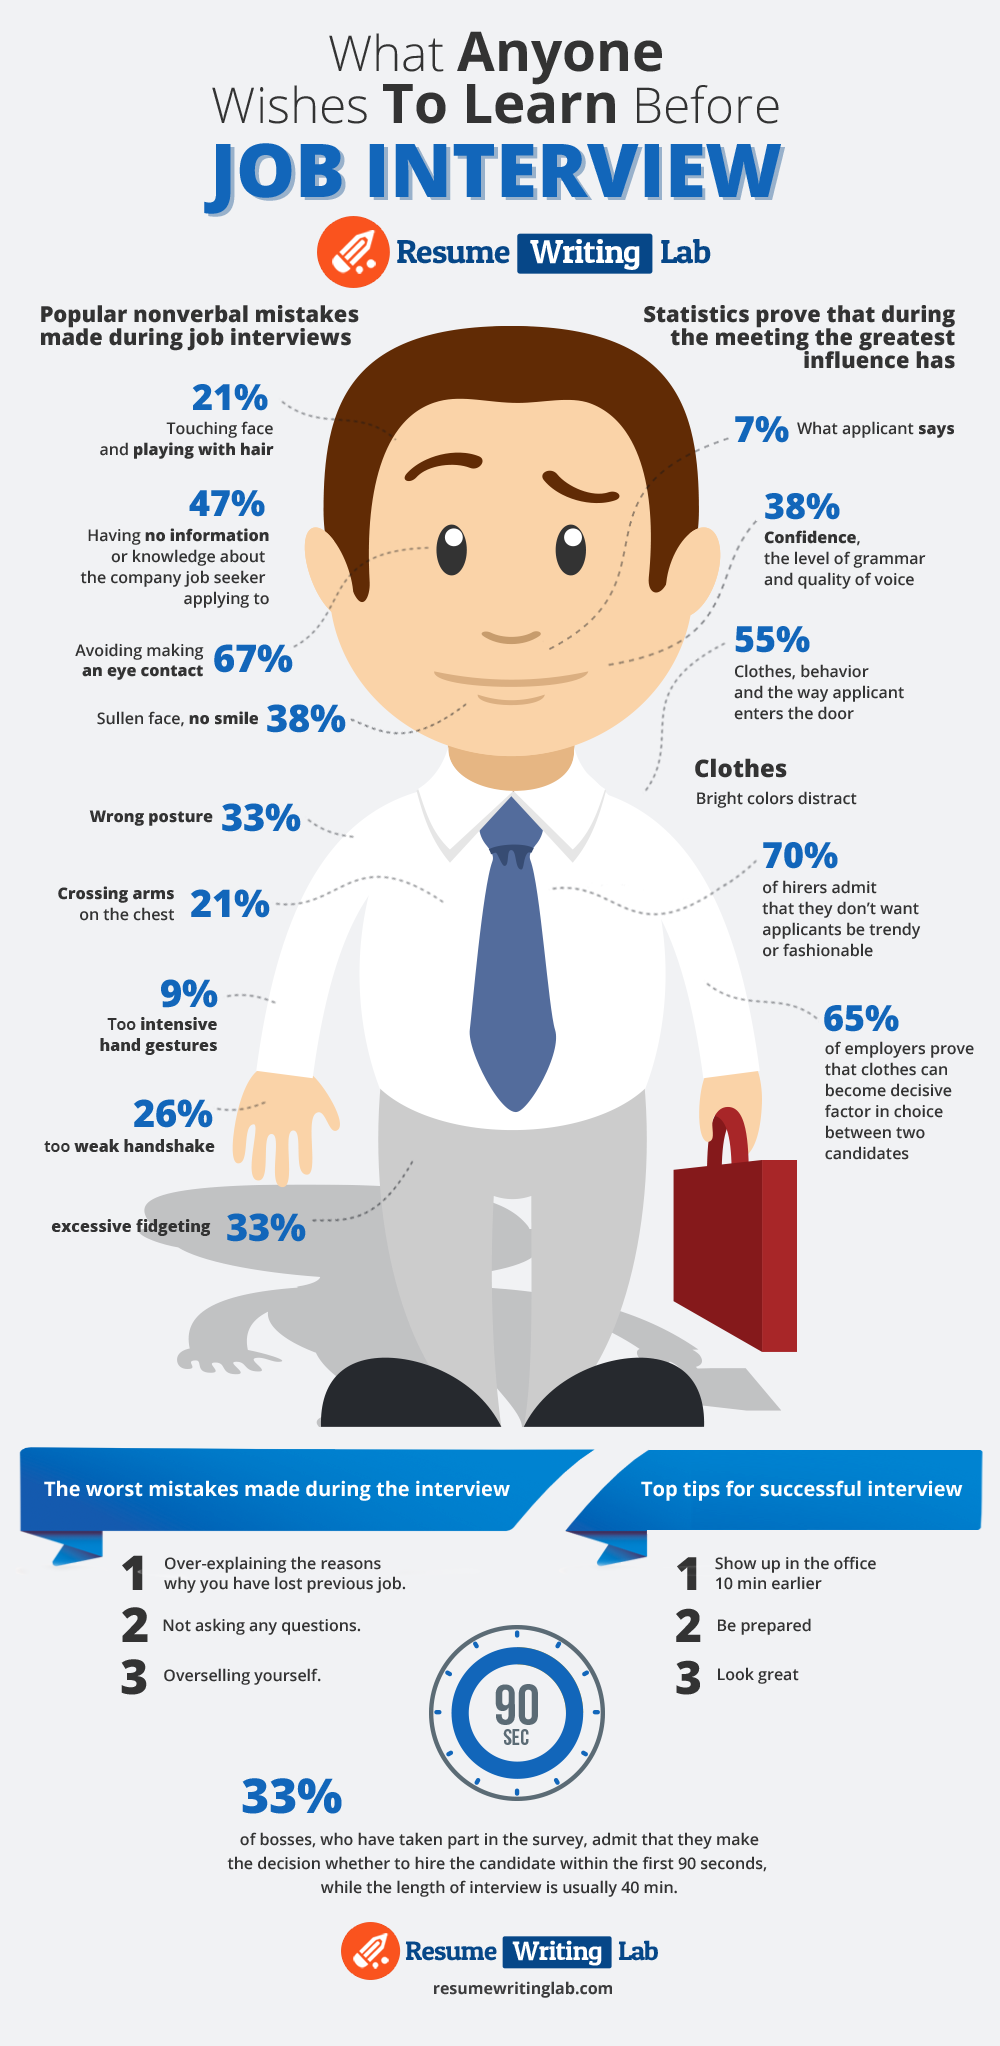 There are plenty of aspects of appropriate preparation for a successful job interview